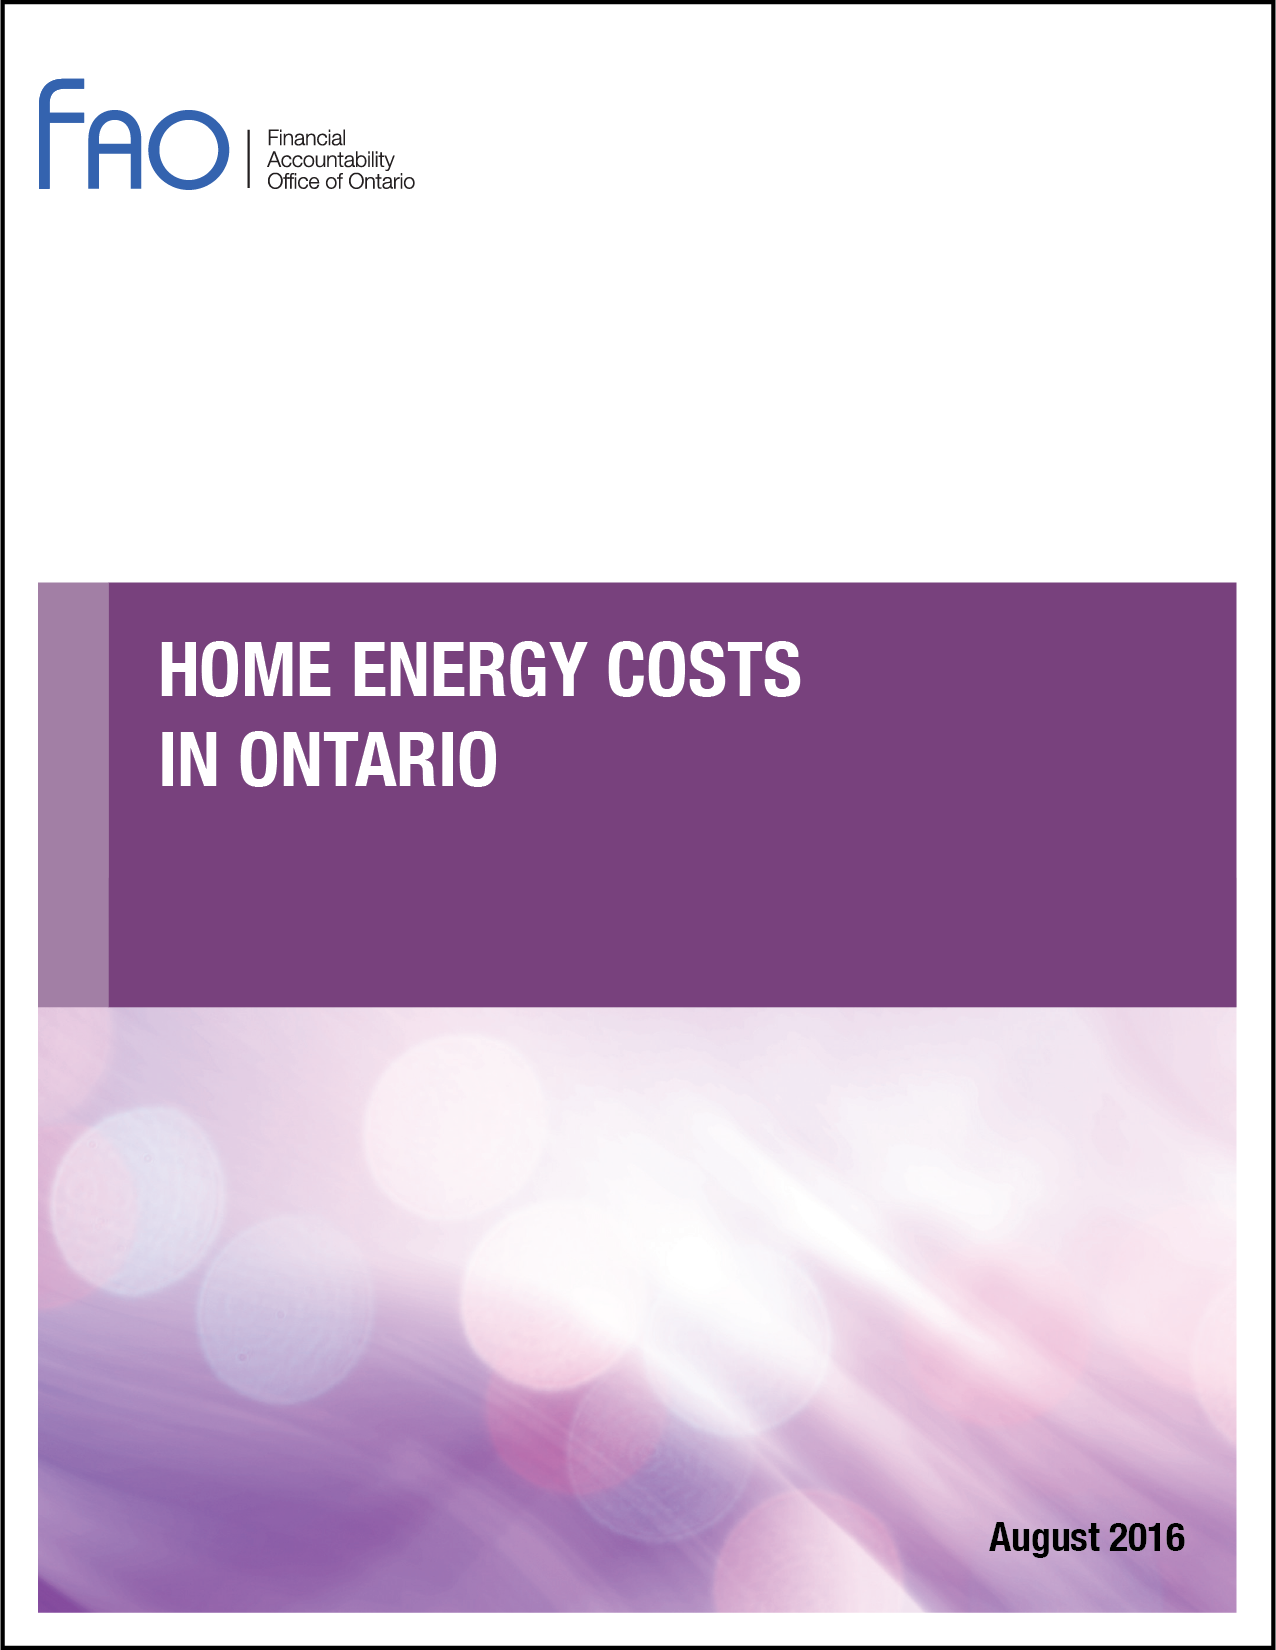 Home Energy Costs in Ontario